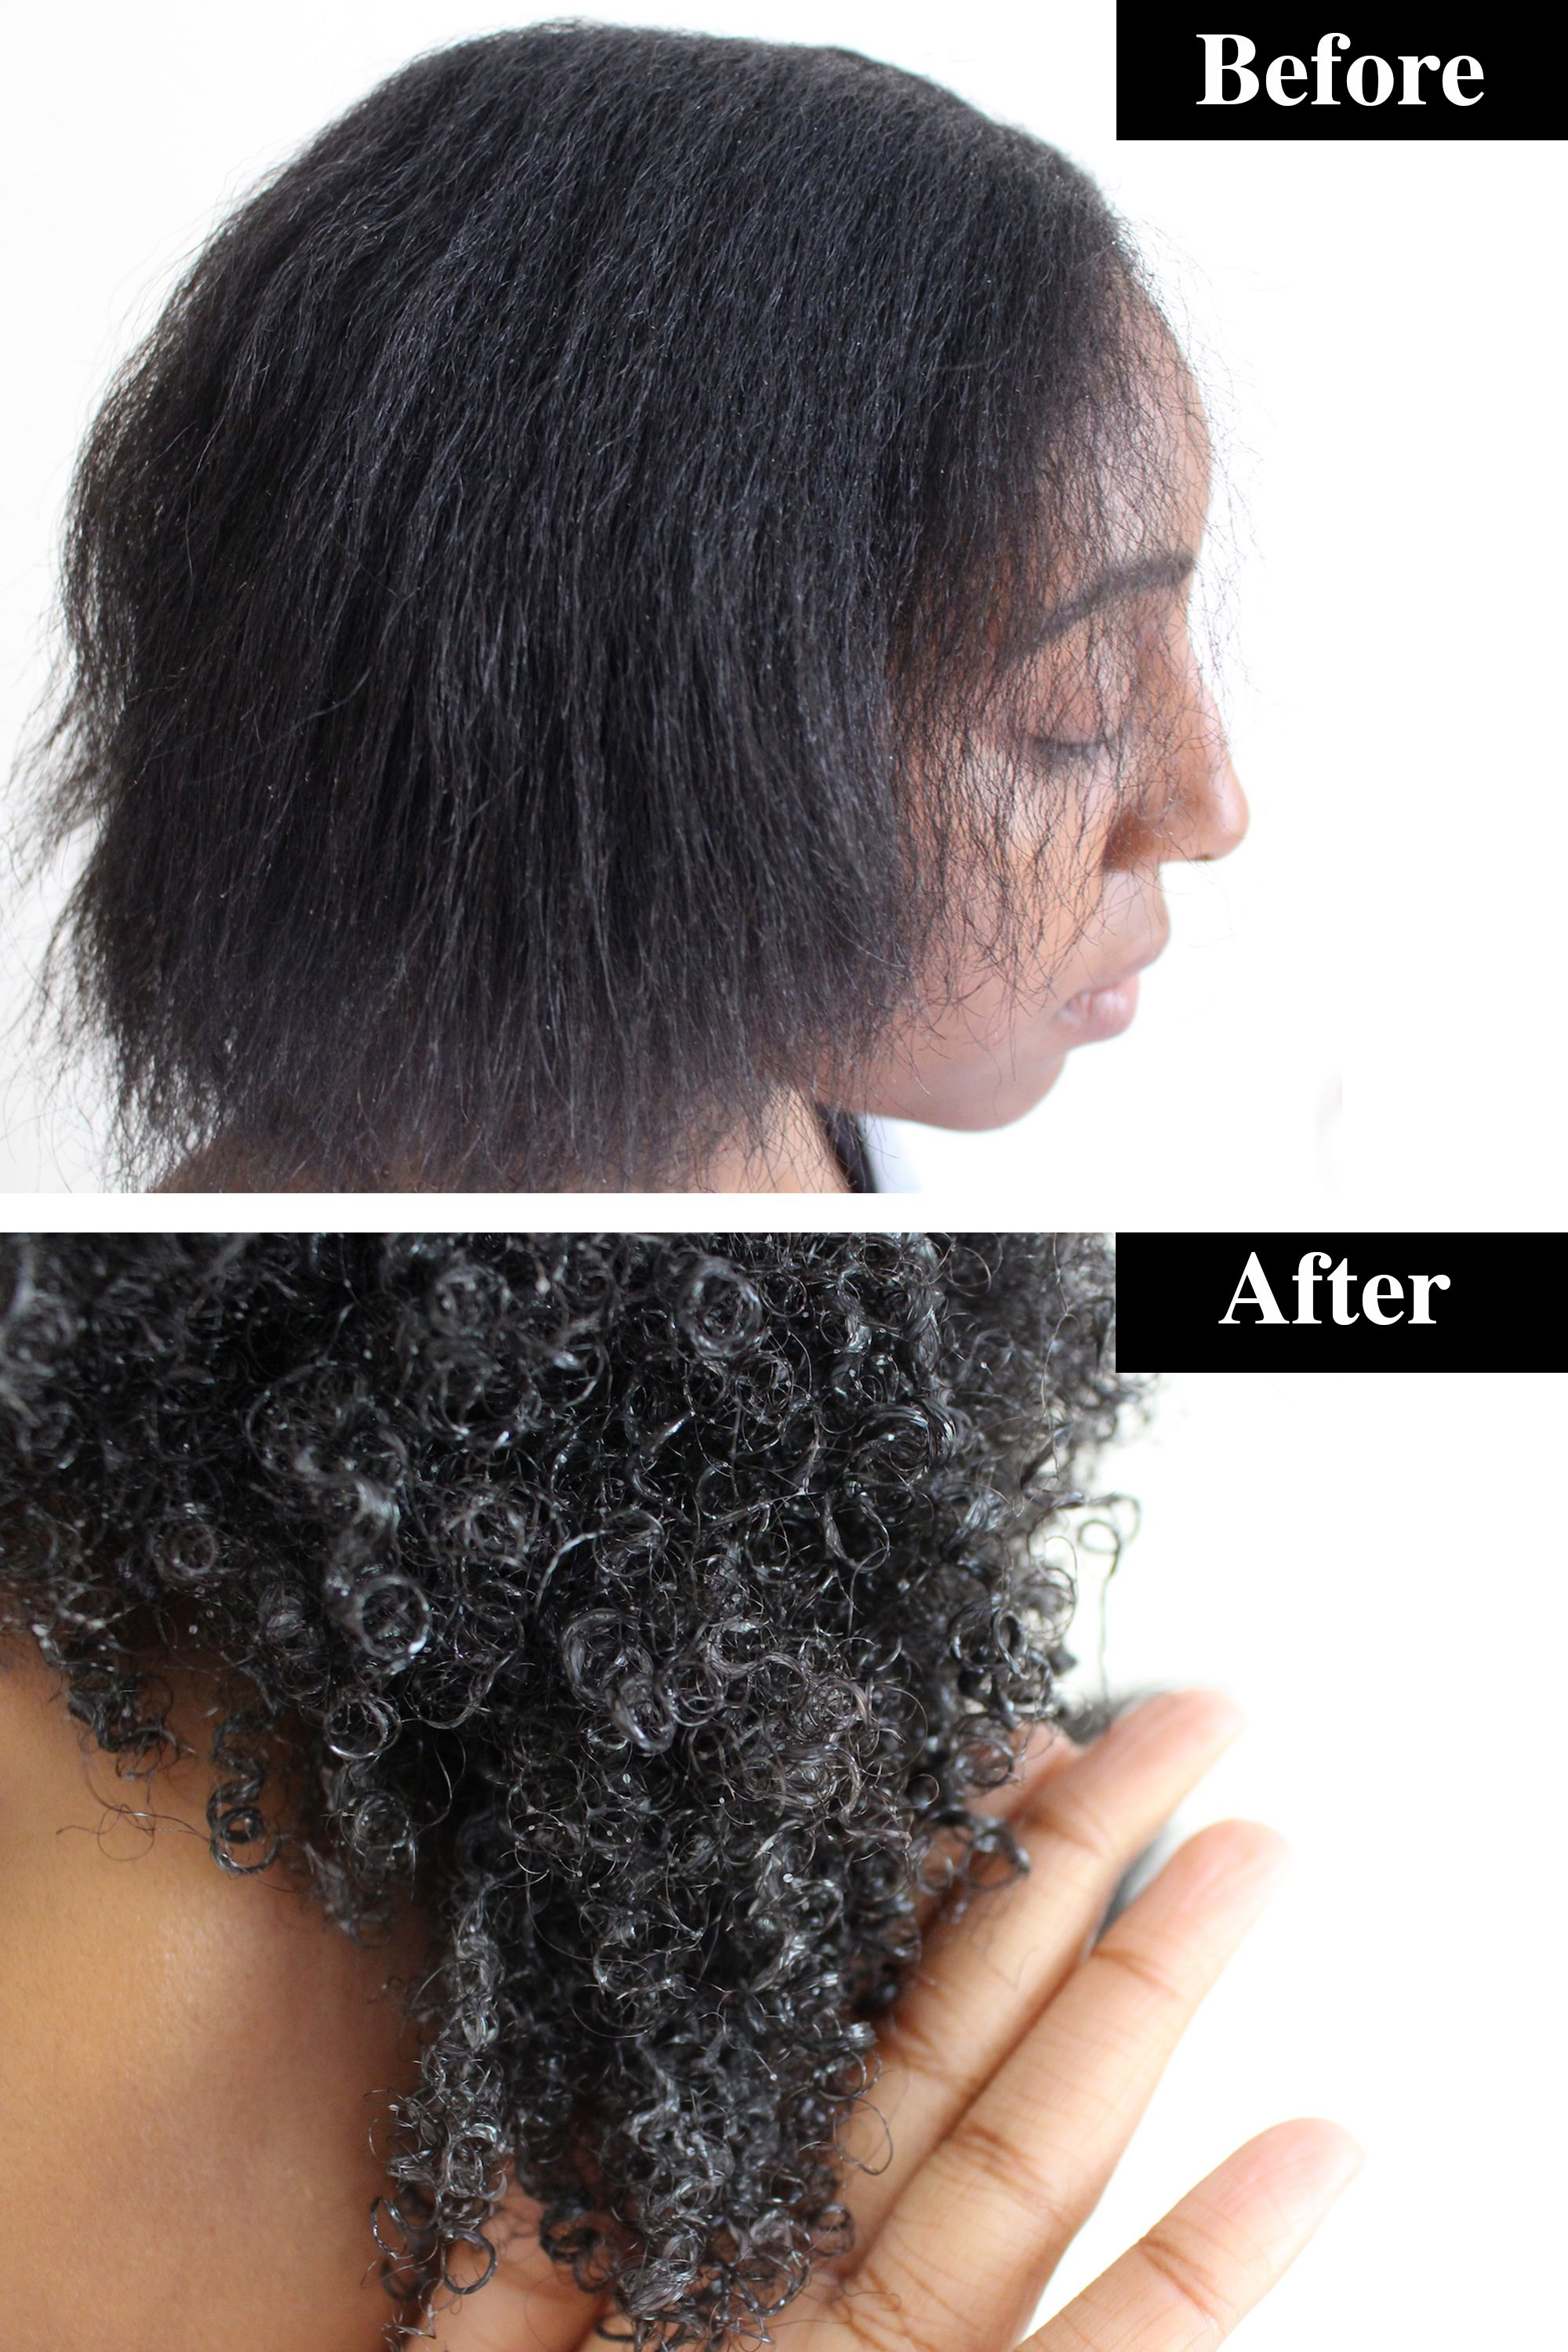 Best Products For Curly Hair 2019 6 Before After Pictures